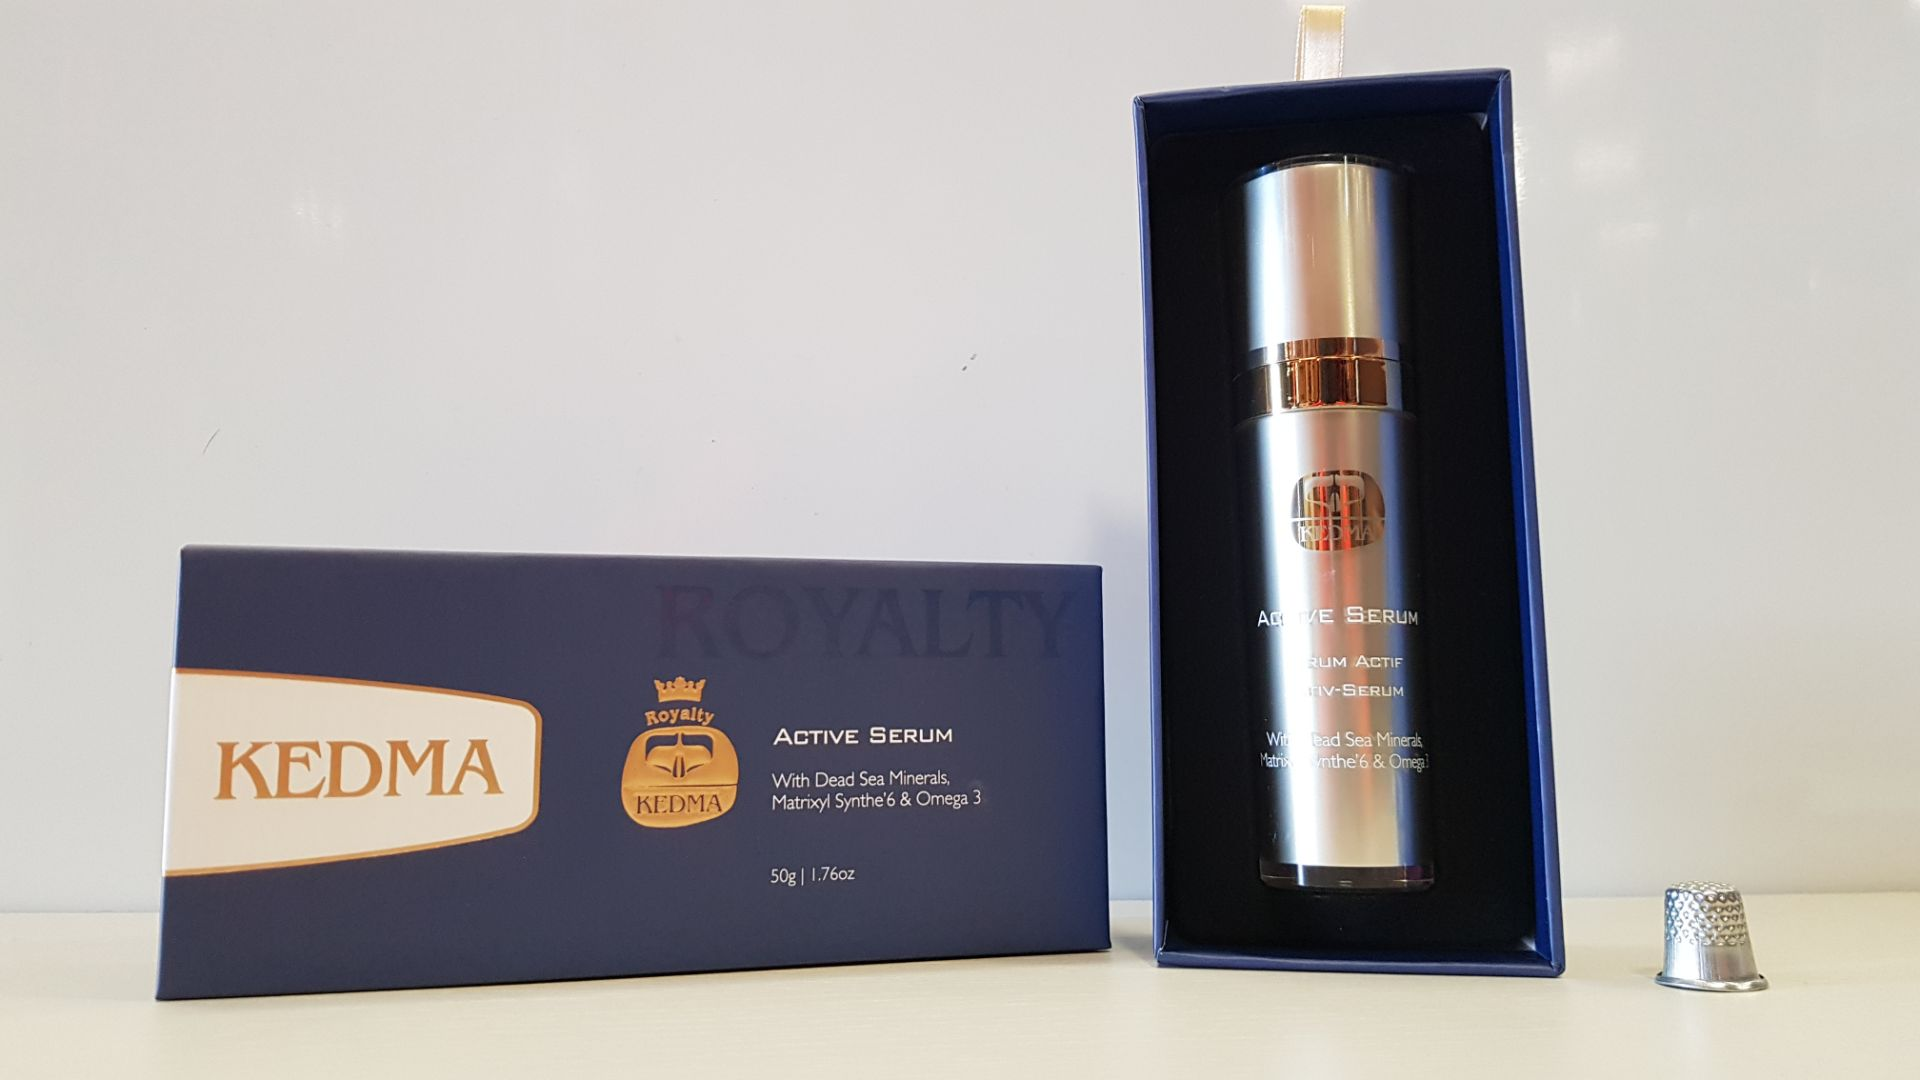 3 X BRAND NEW BOXED ROYALTY KEDMA ACTIVE SERUM WITH DEAD SEA MINERALS, MATRIXYL SYNTHE'6 & OMEGA 3 -